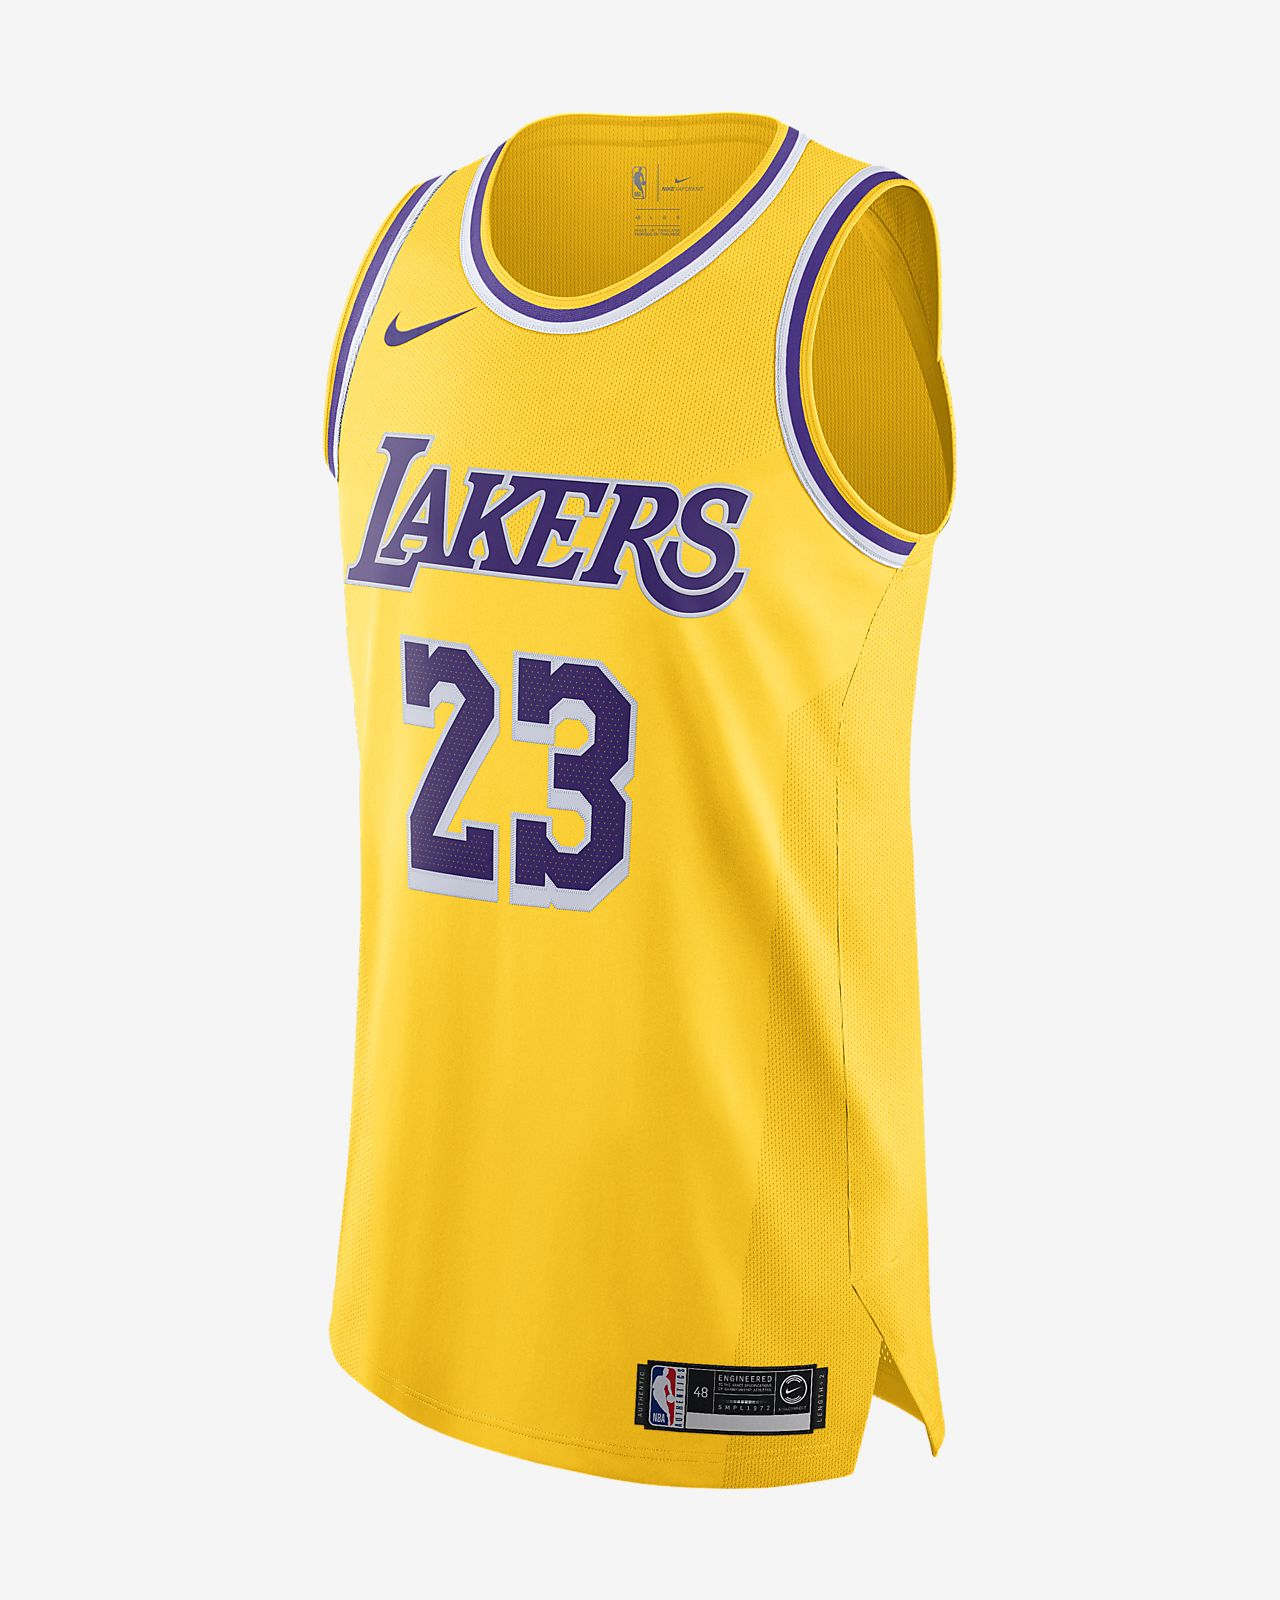 5e65a57cab2 LeBron James Icon Edition Authentic (Los Angeles Lakers) Men s Nike ...